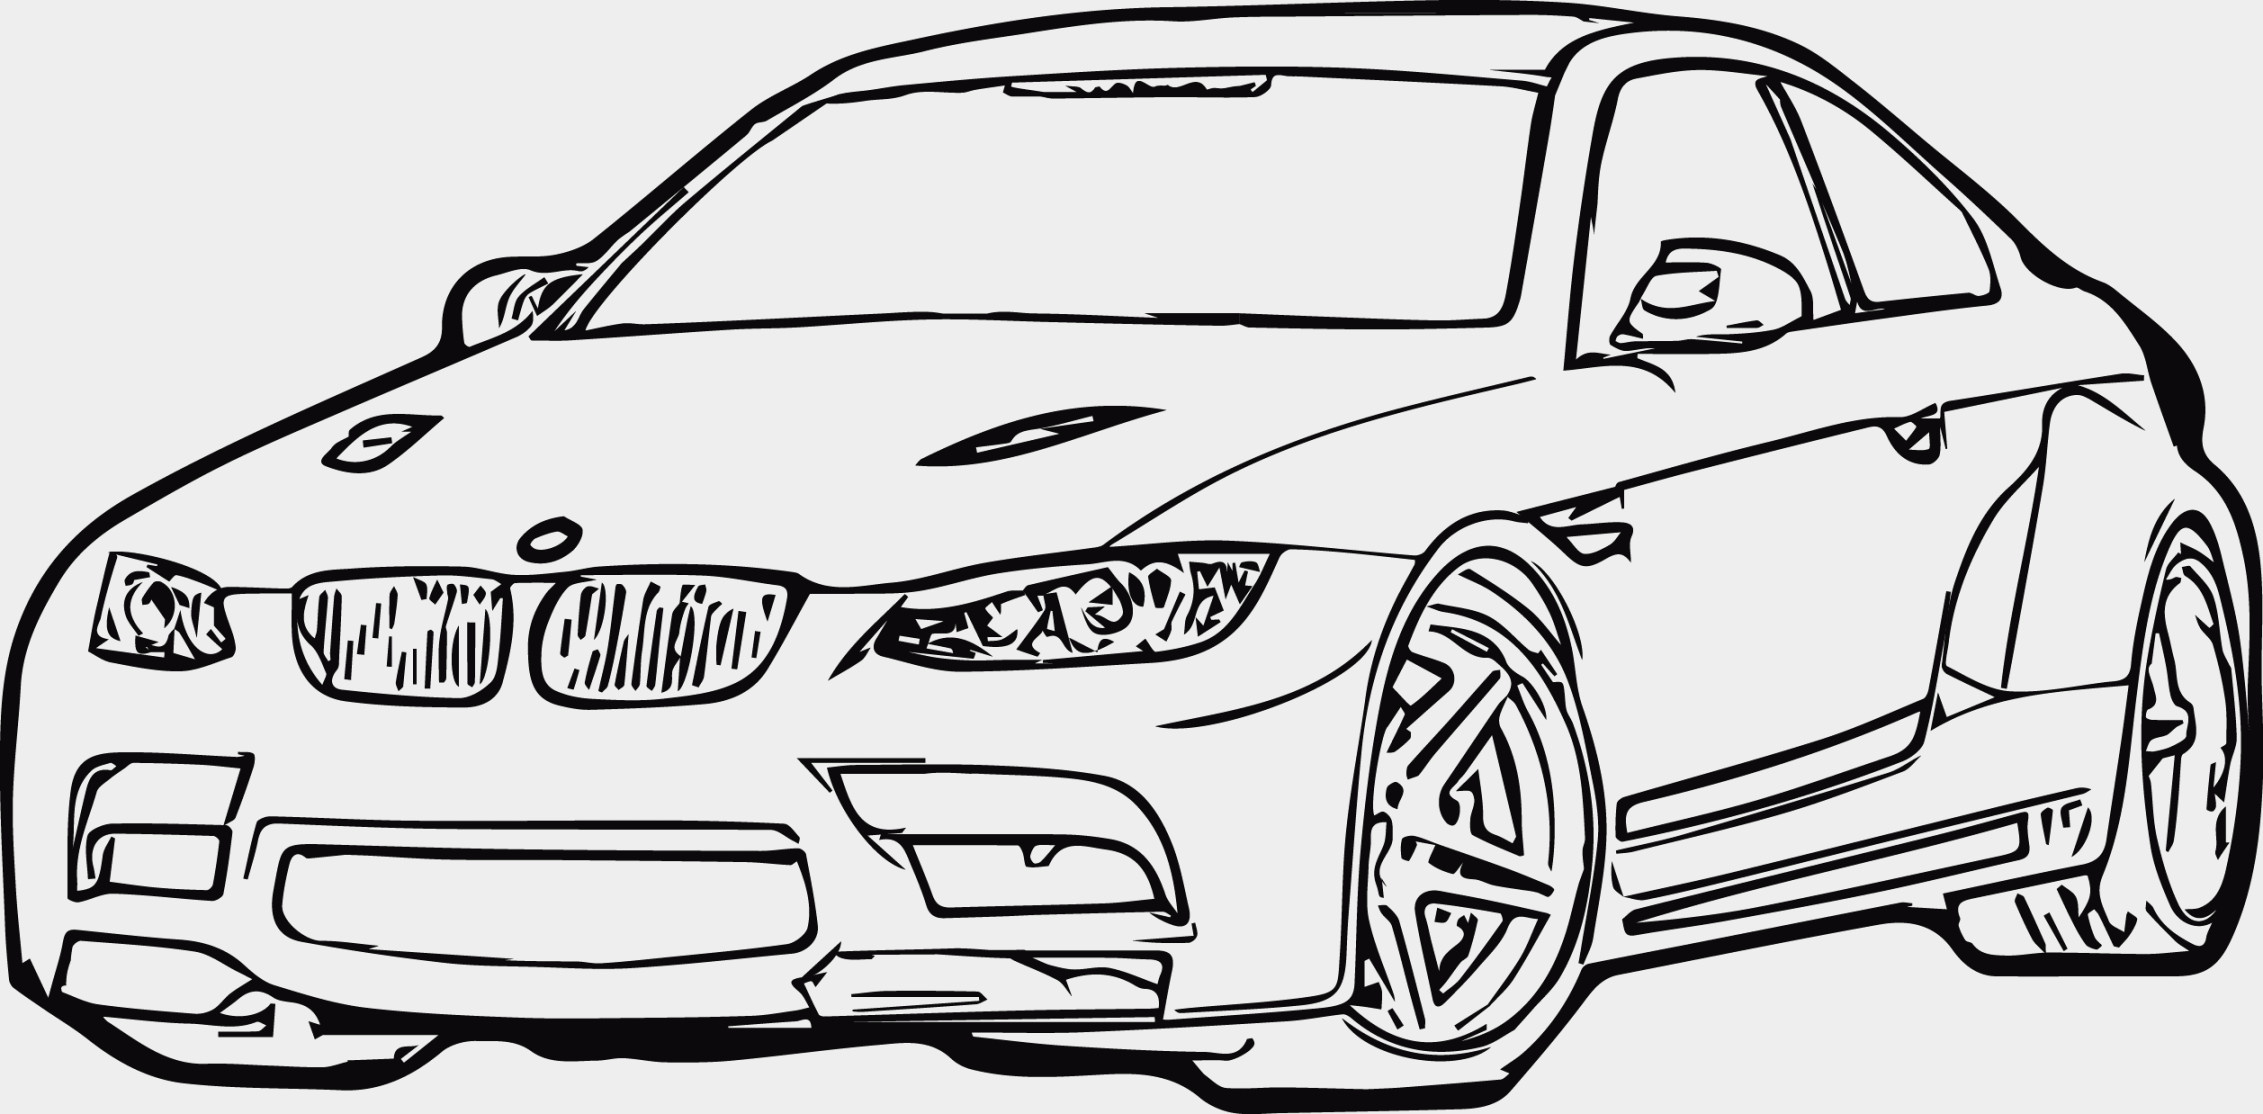 Ausmalbilder Autos Bmw : Bmw I8 Car Coloring Pages Worksheet Coloring Pages